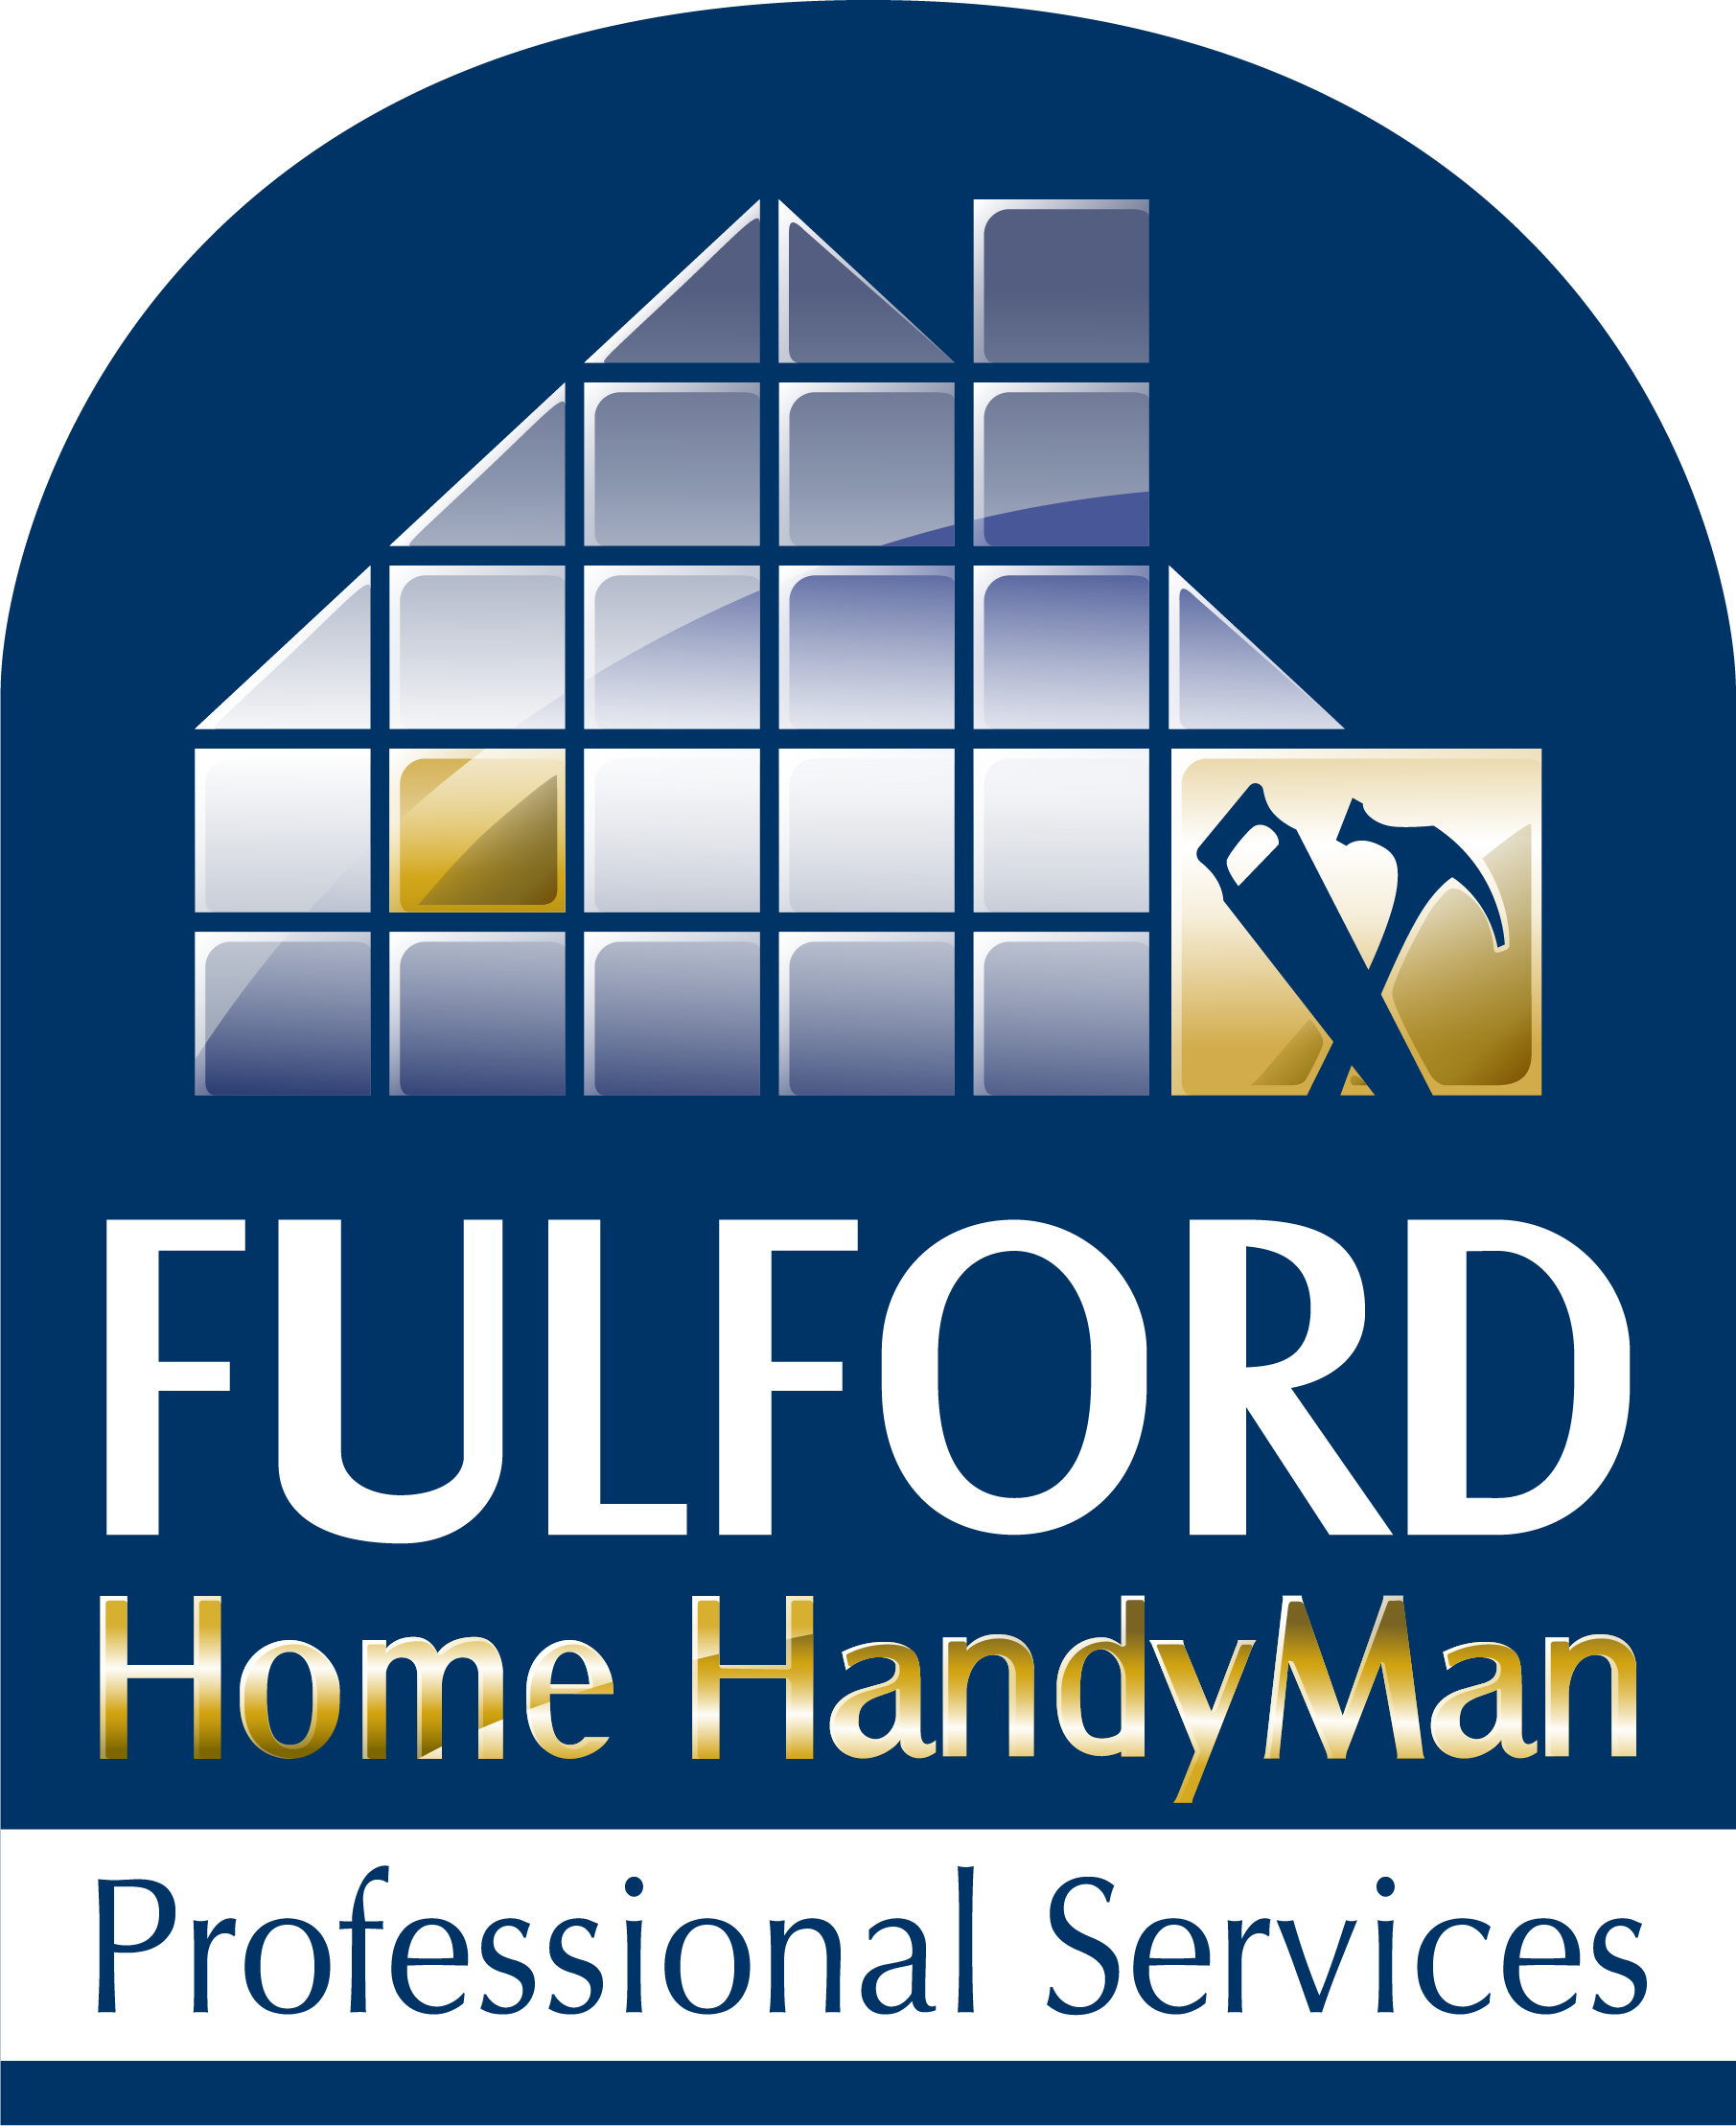 Home Handyman Services from Fulford Home Remodeling Craftsmen